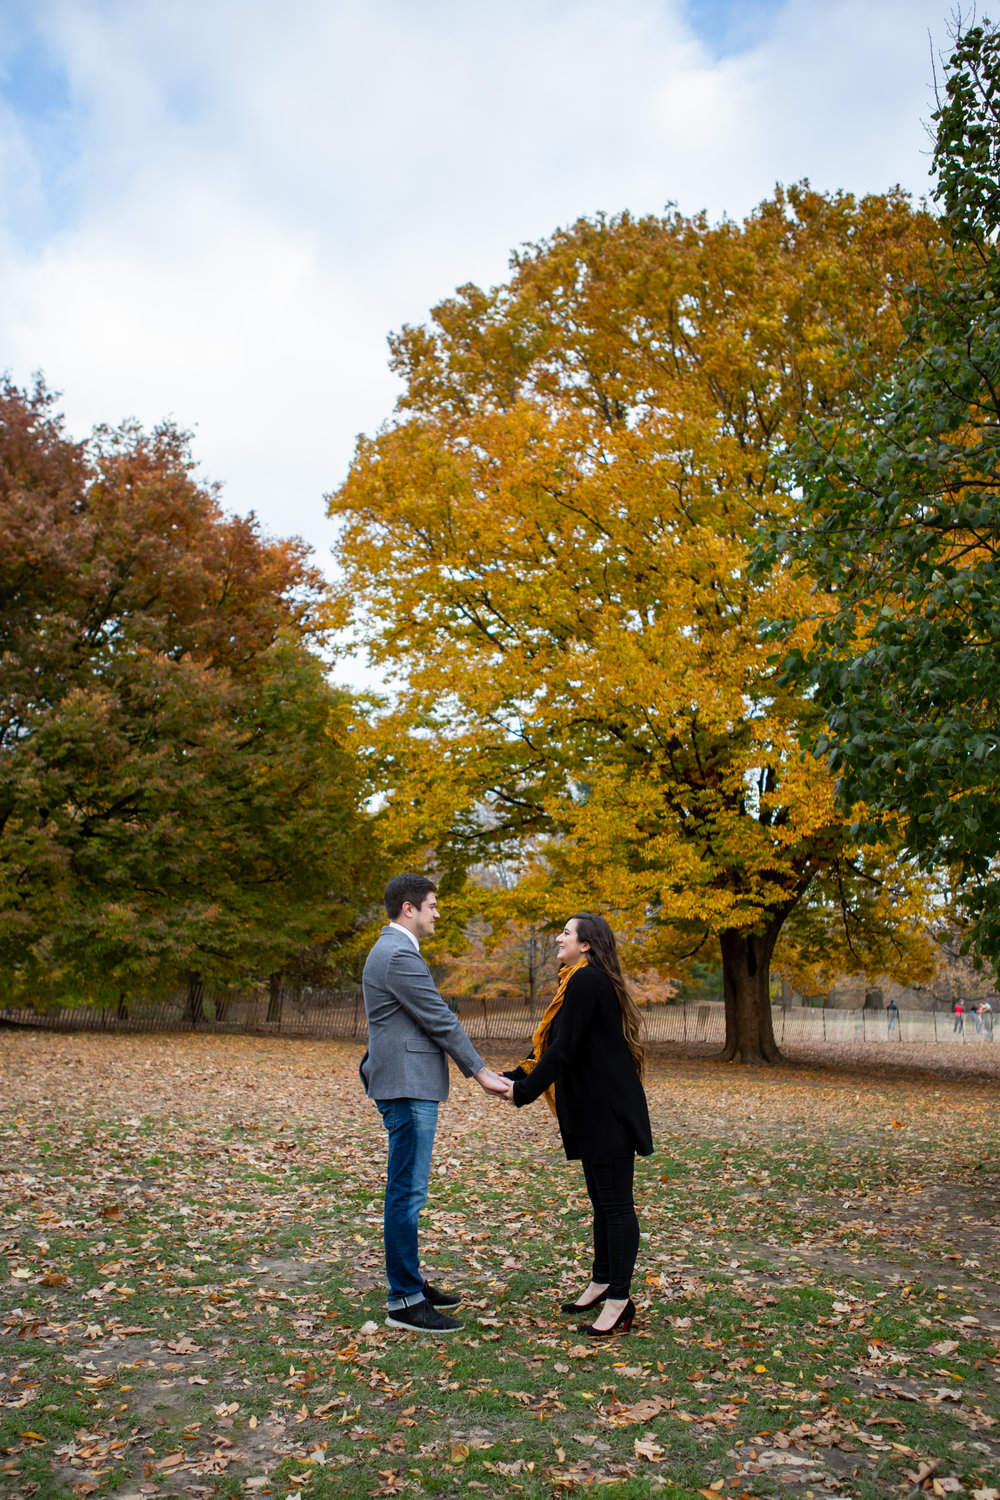 Kate-Alison-Photography-Prospect-Park-Brooklyn-Engagement-Session-Jenna-James-23.jpg